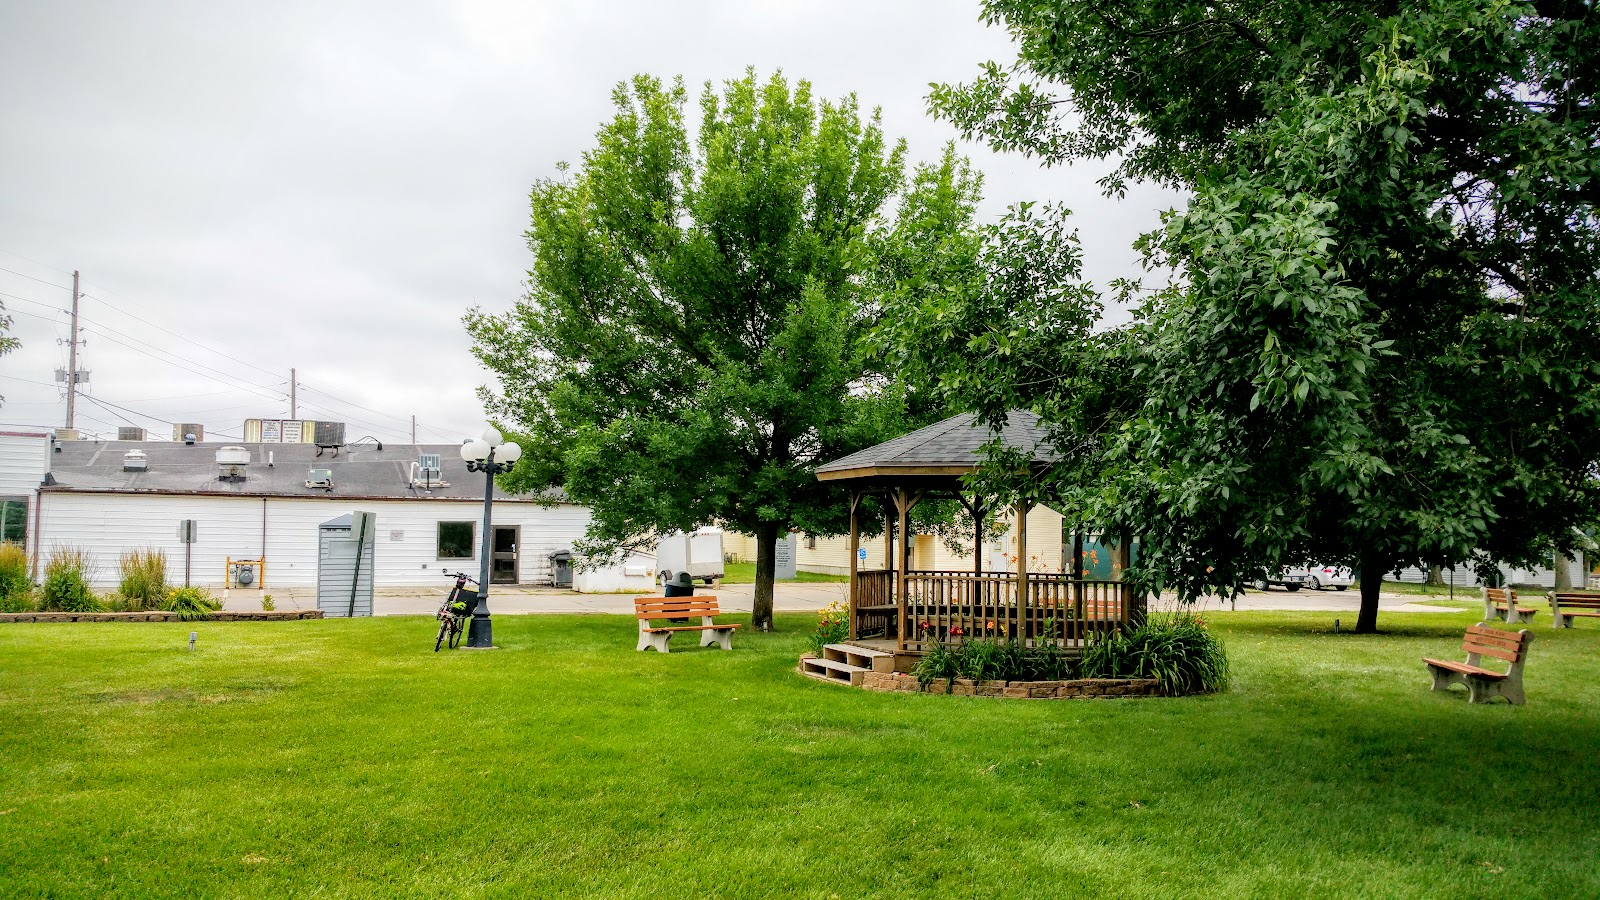 north sioux city Make your rv camping site reservation at sioux city north koa located in north sioux city, south dakota.